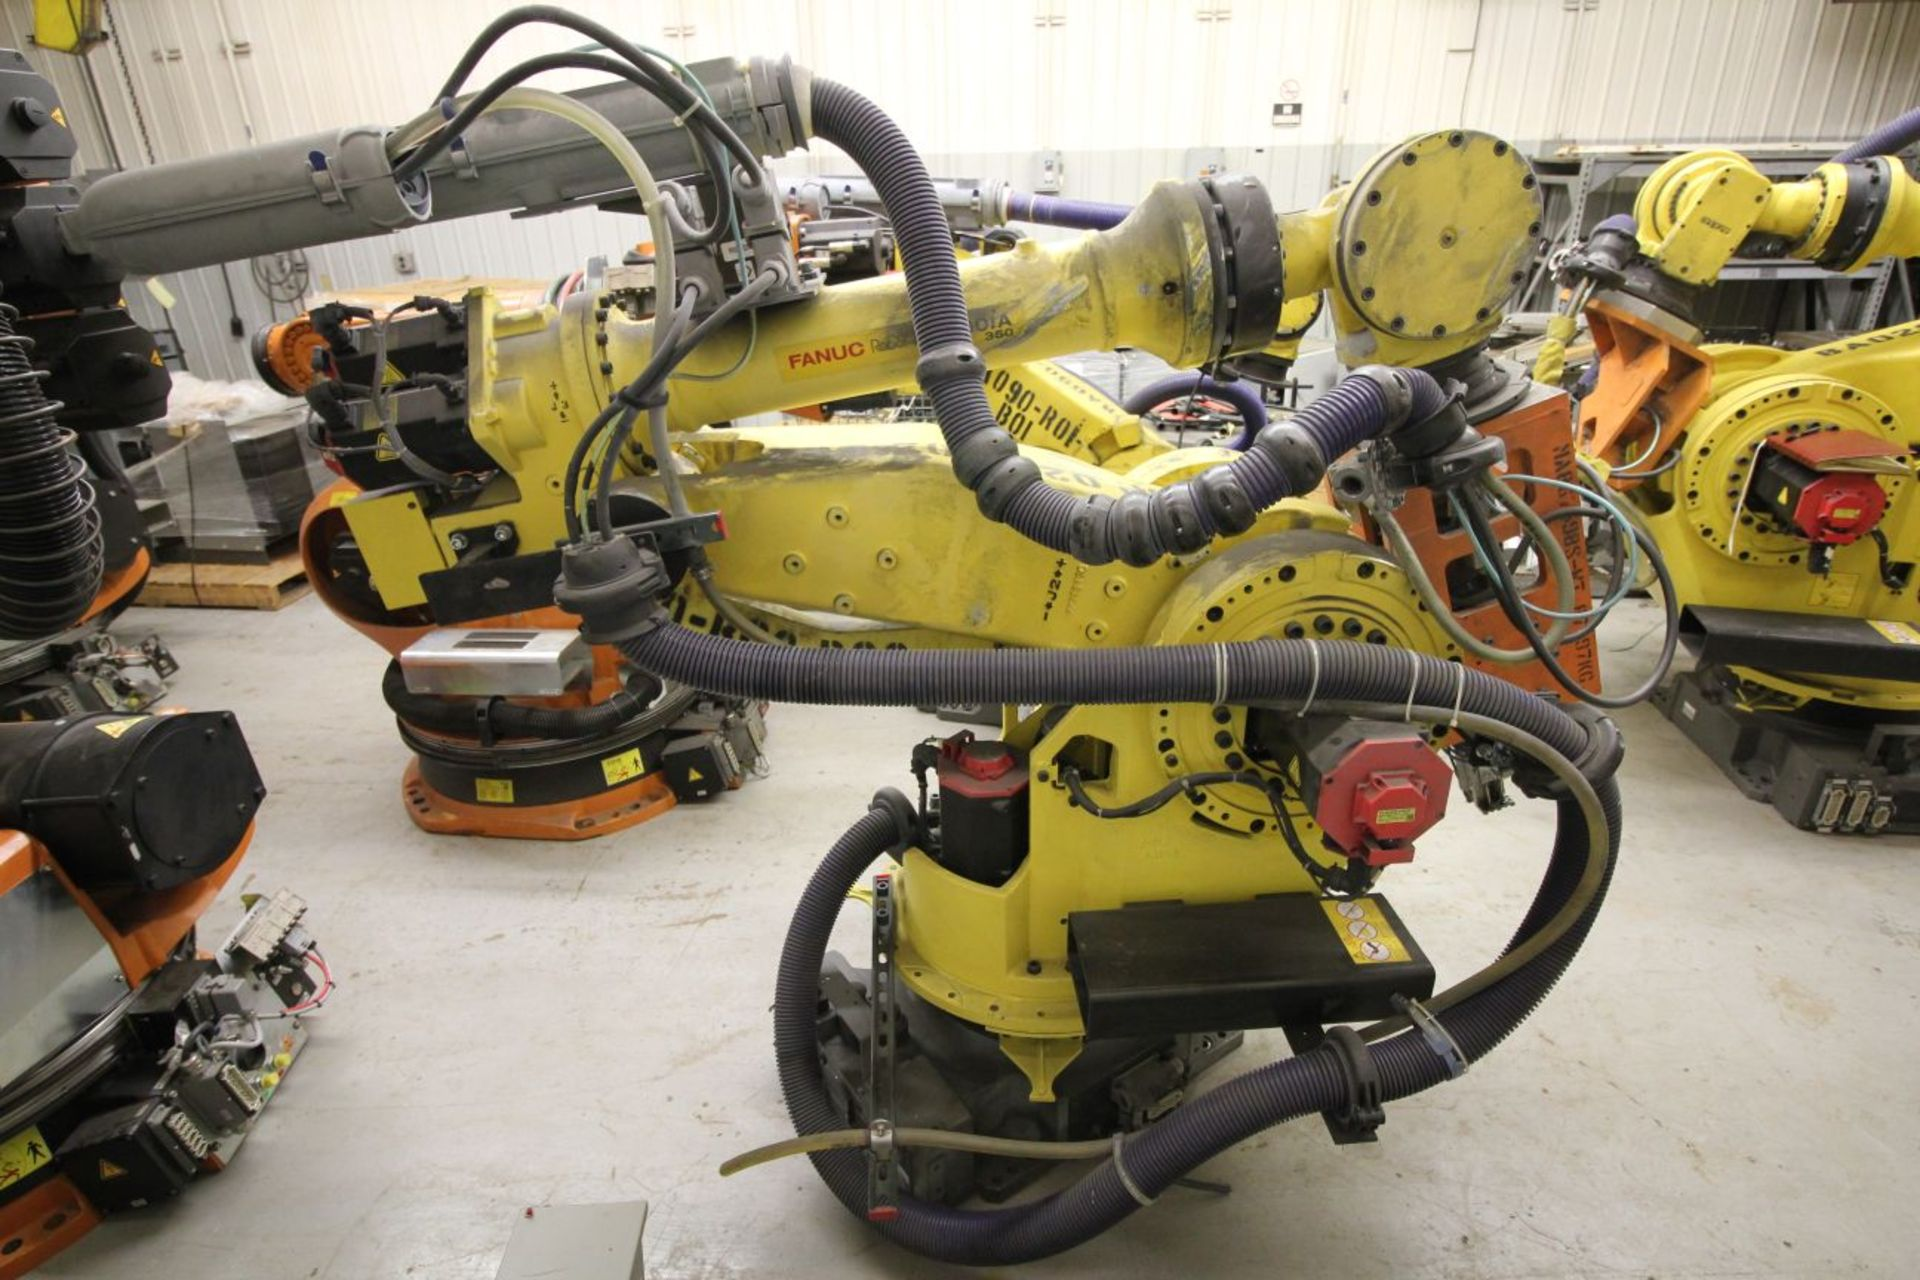 Lot 28 - FANUC ROBOT M900iA/350 WITH R-30iA CONTROL, TEACH & CABLES, YEAR 2011, SN 111634